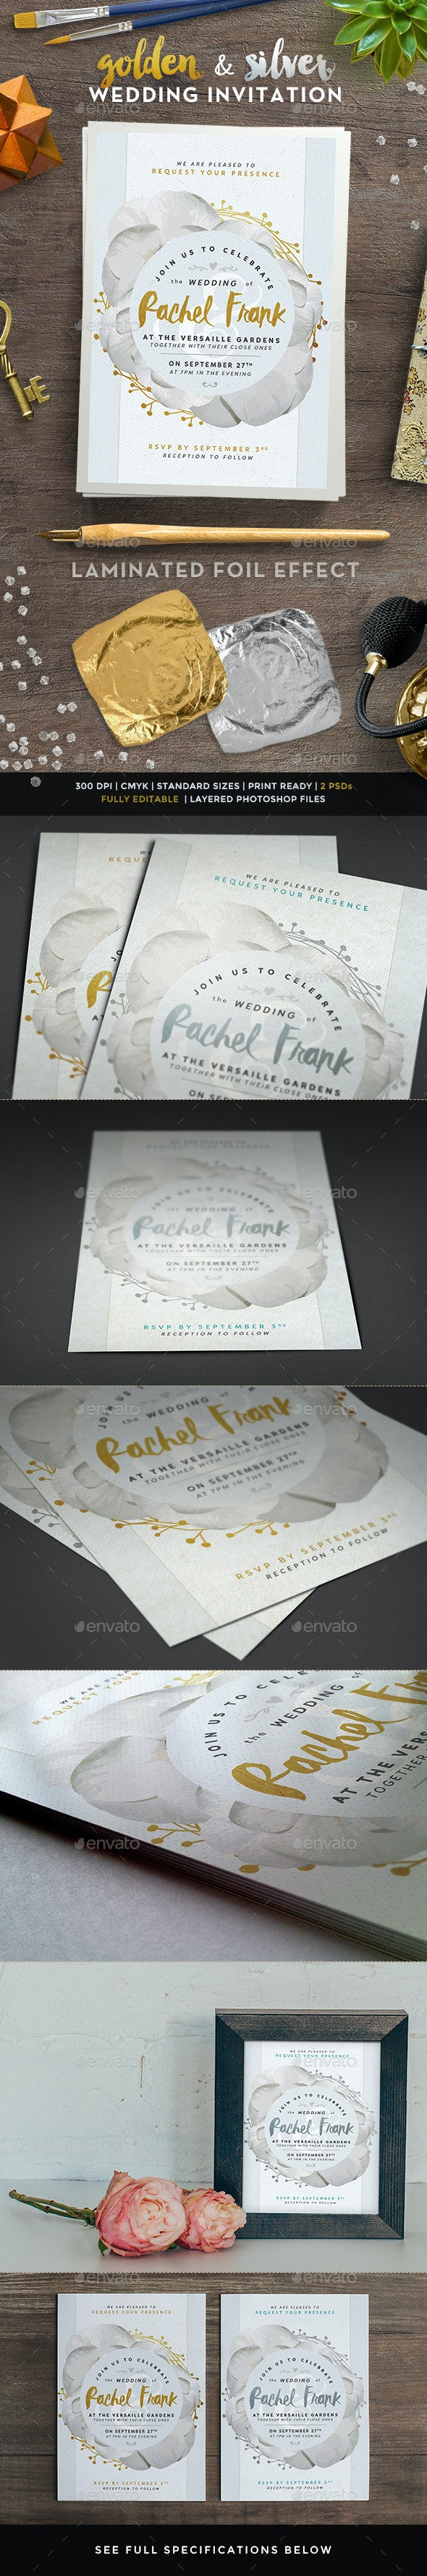 Golden and Silver Wedding Invitations - Weddings Cards & Invites